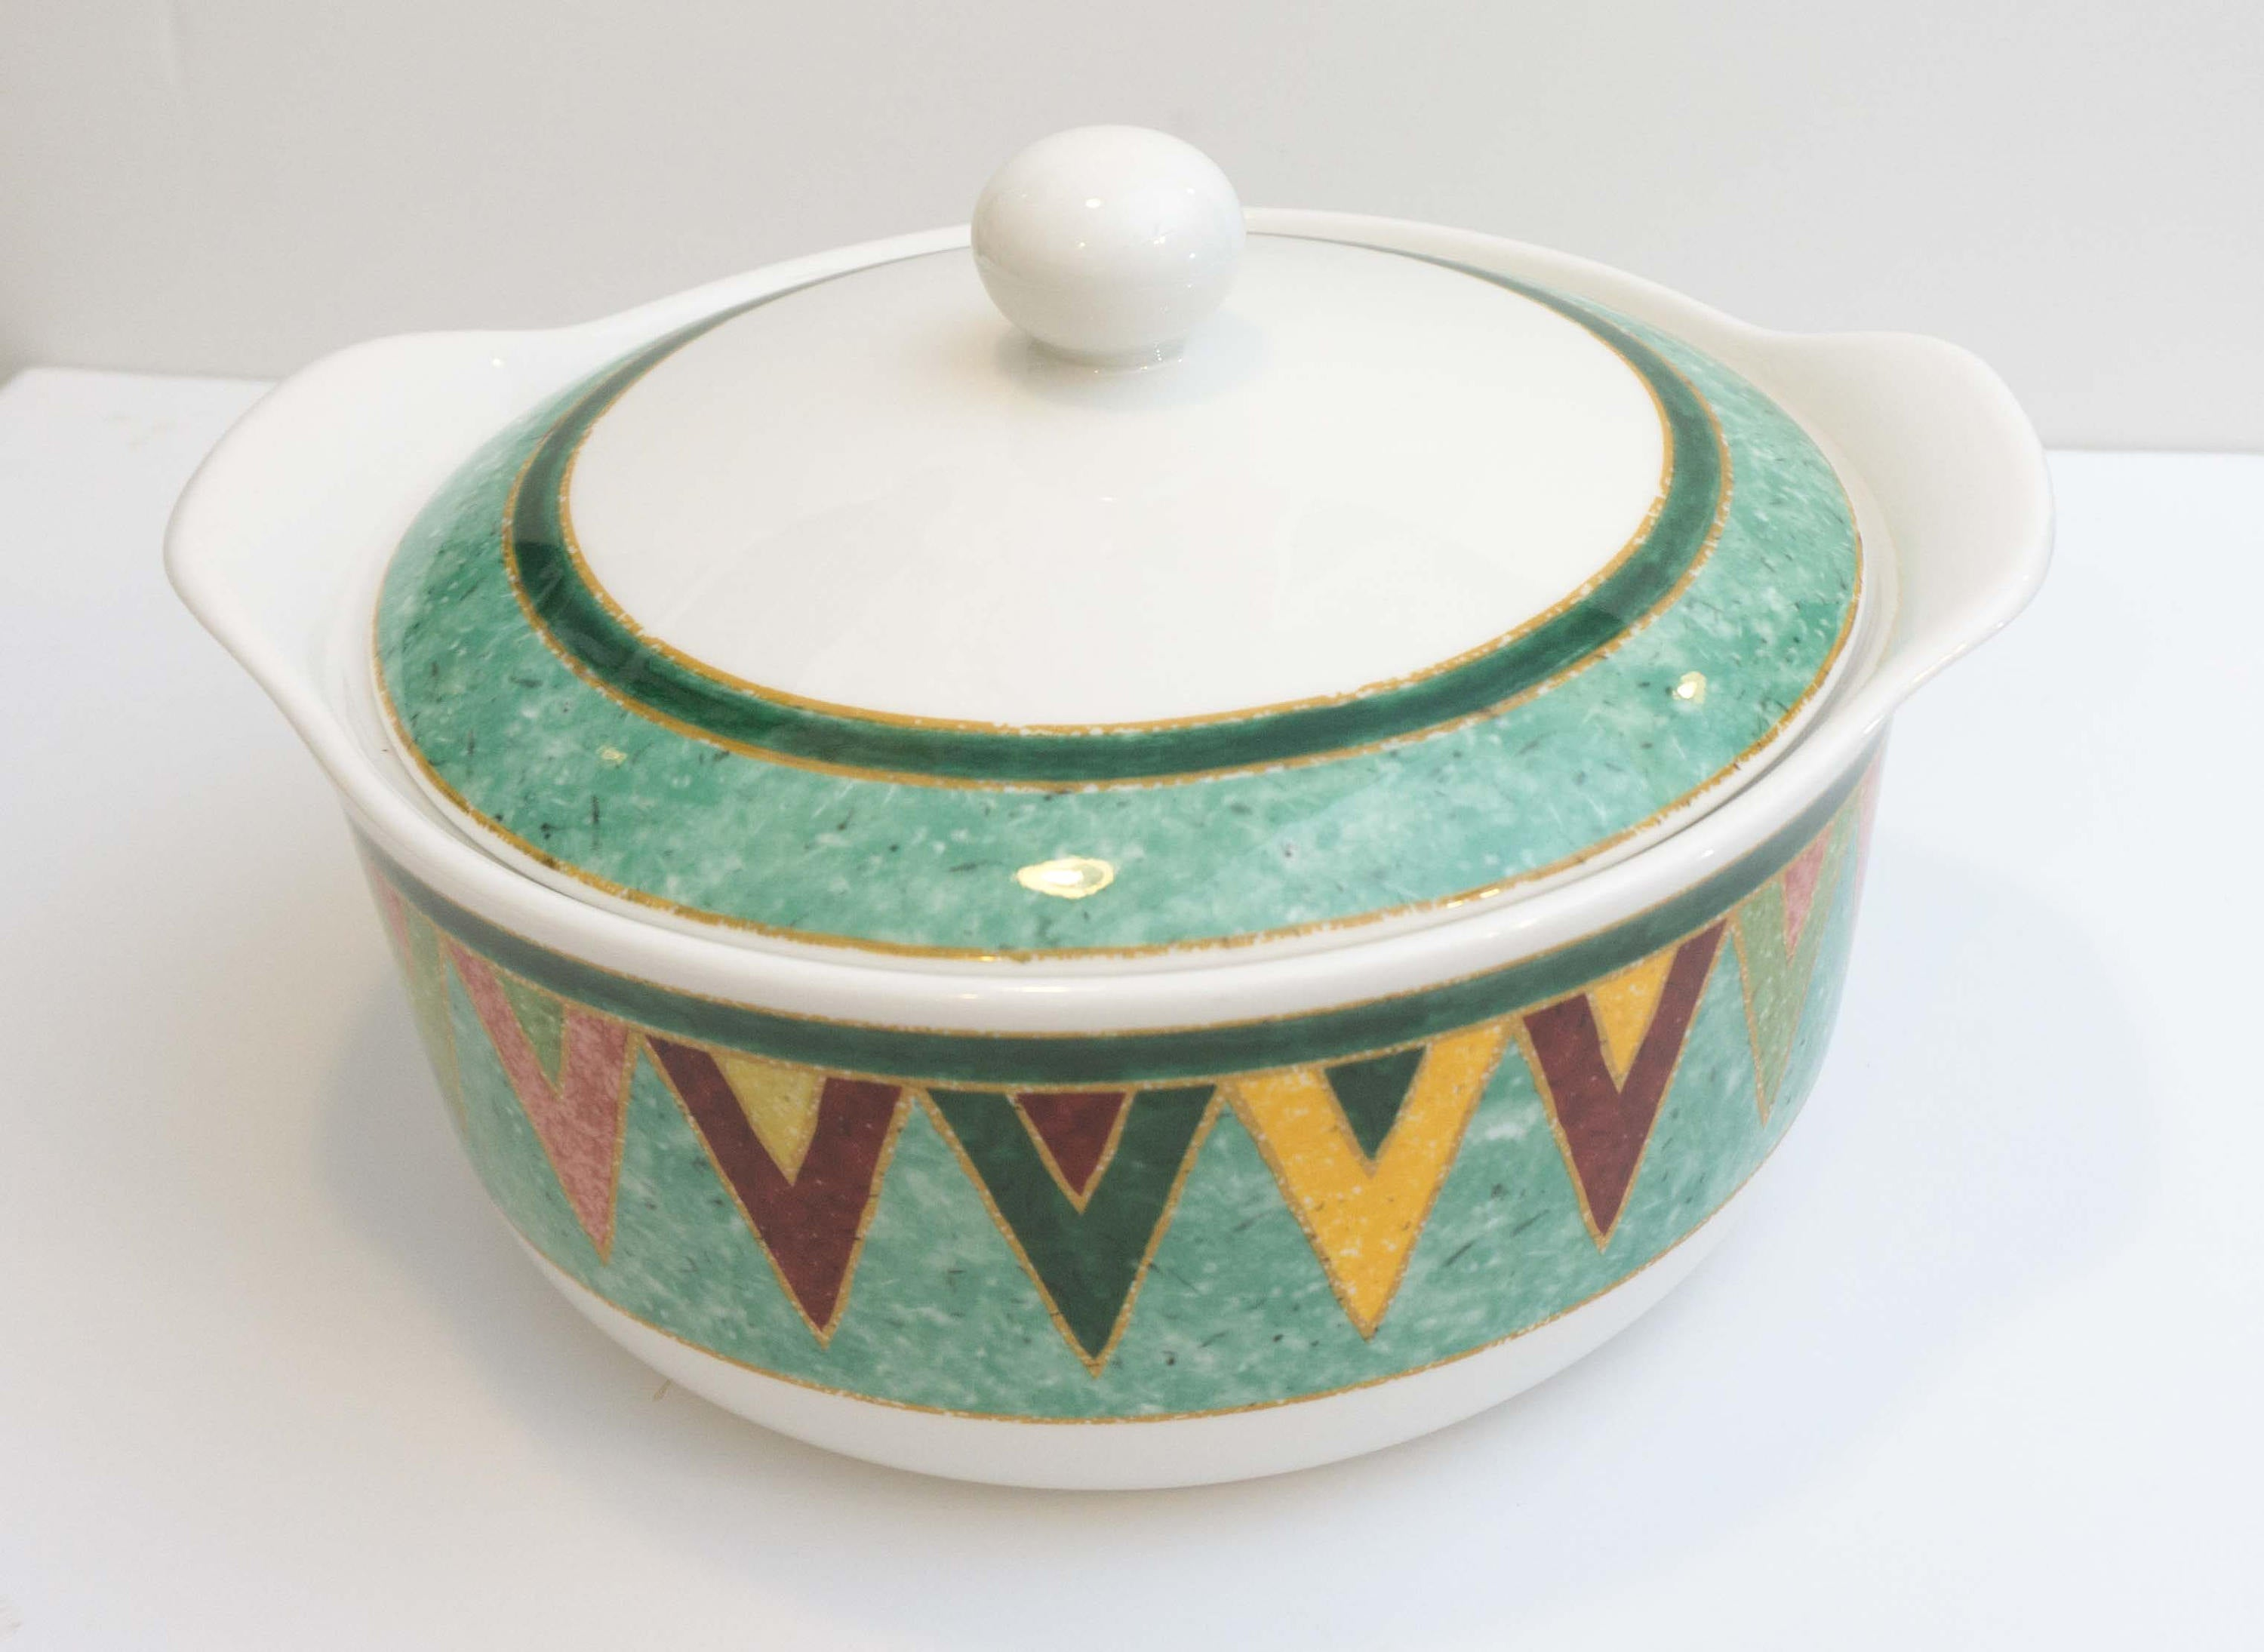 Discontinued Southwestern Style Large 2.5 Quart Covered Casserole in Japora by Royal Doulton